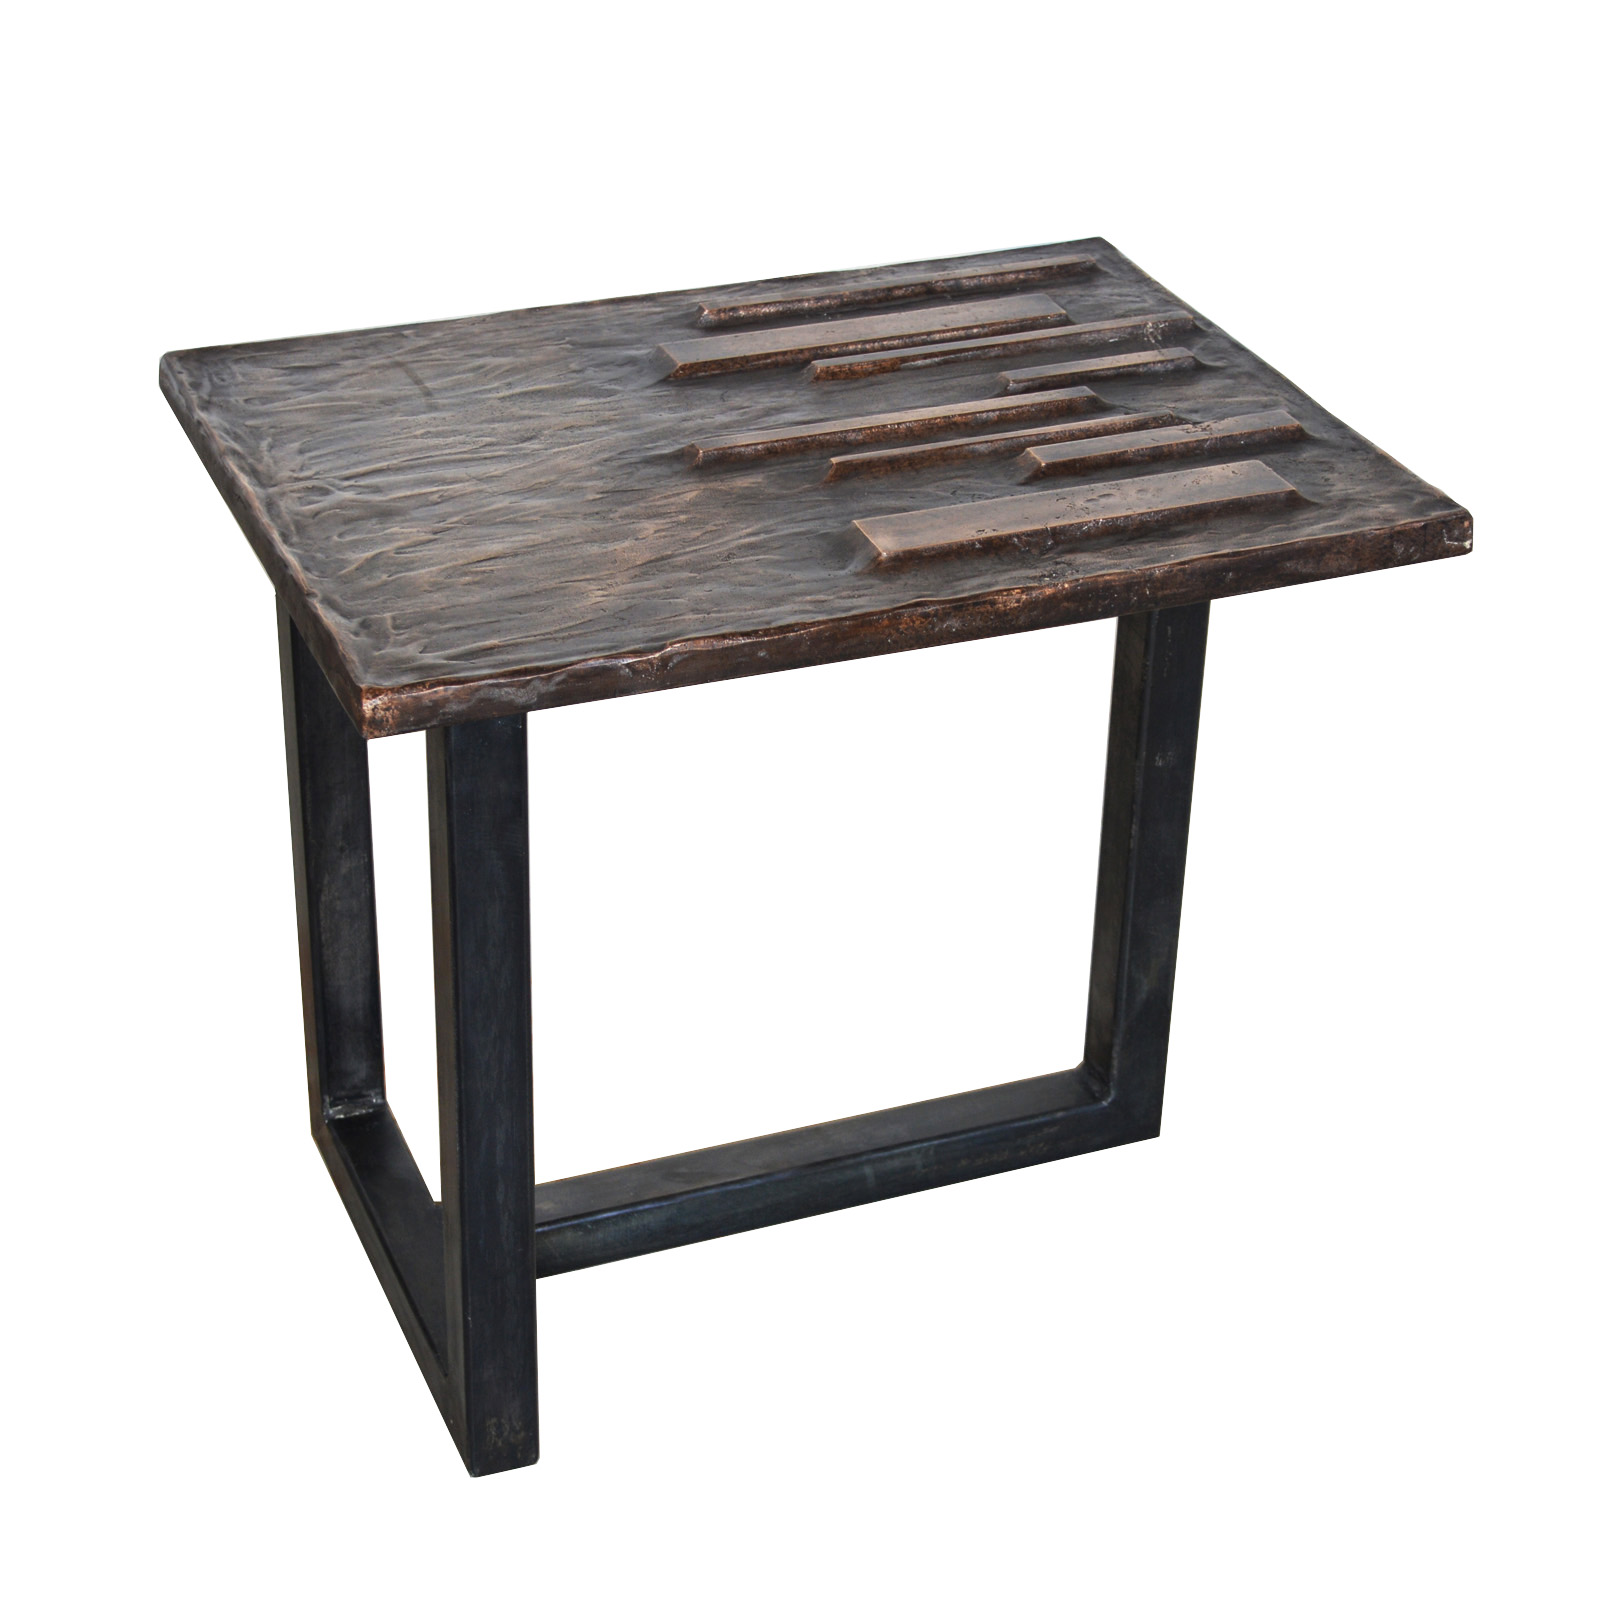 Insurgo Side Table by Chuck Moffit